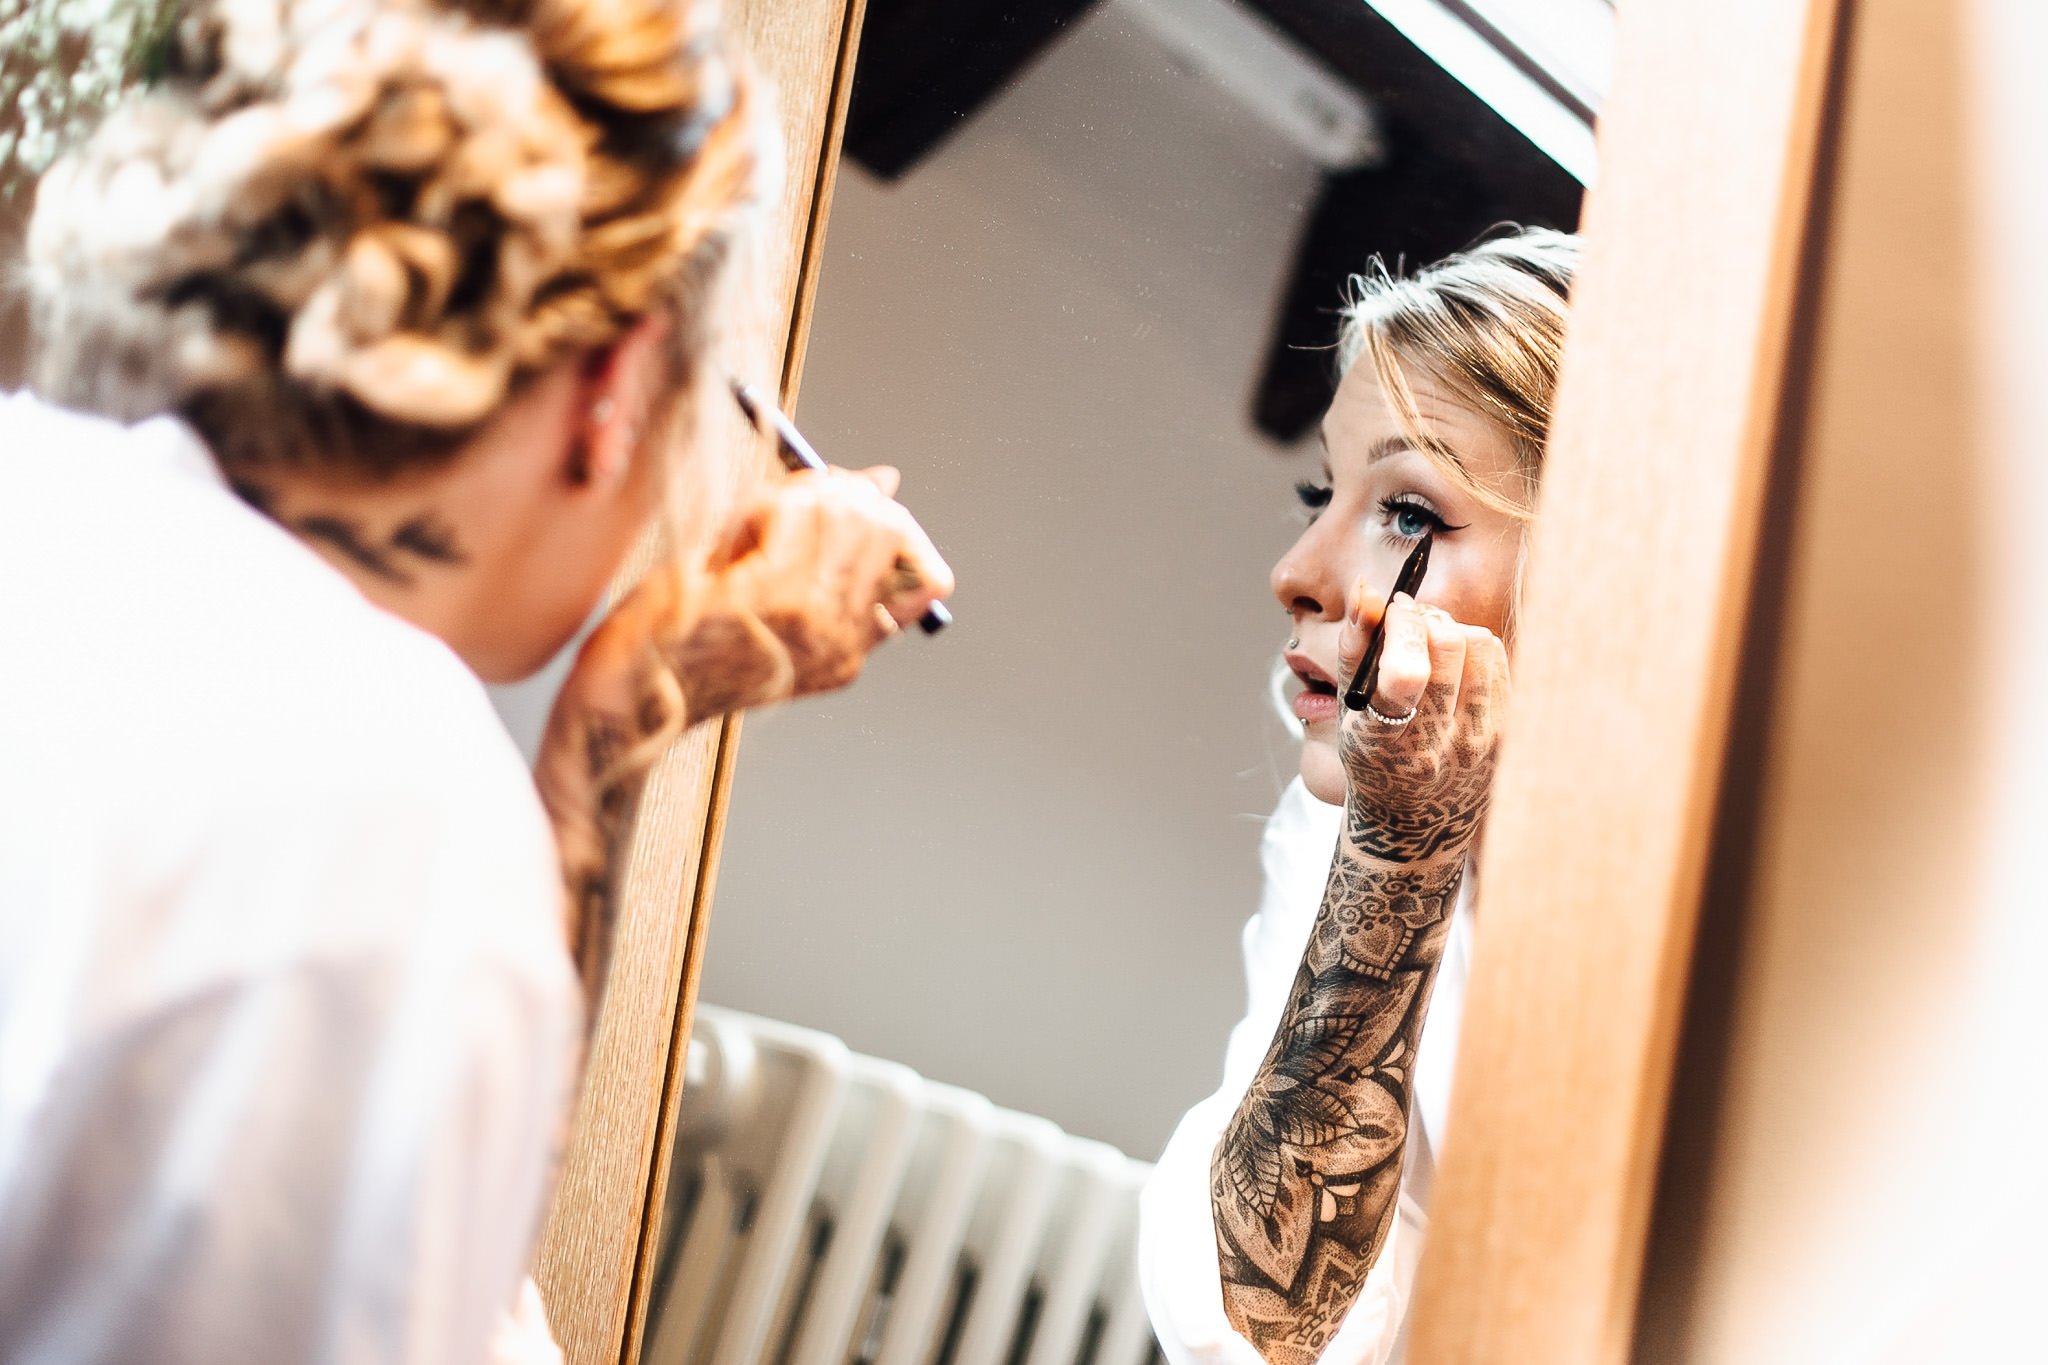 tattooed bride make up photos at woodland wedding photos